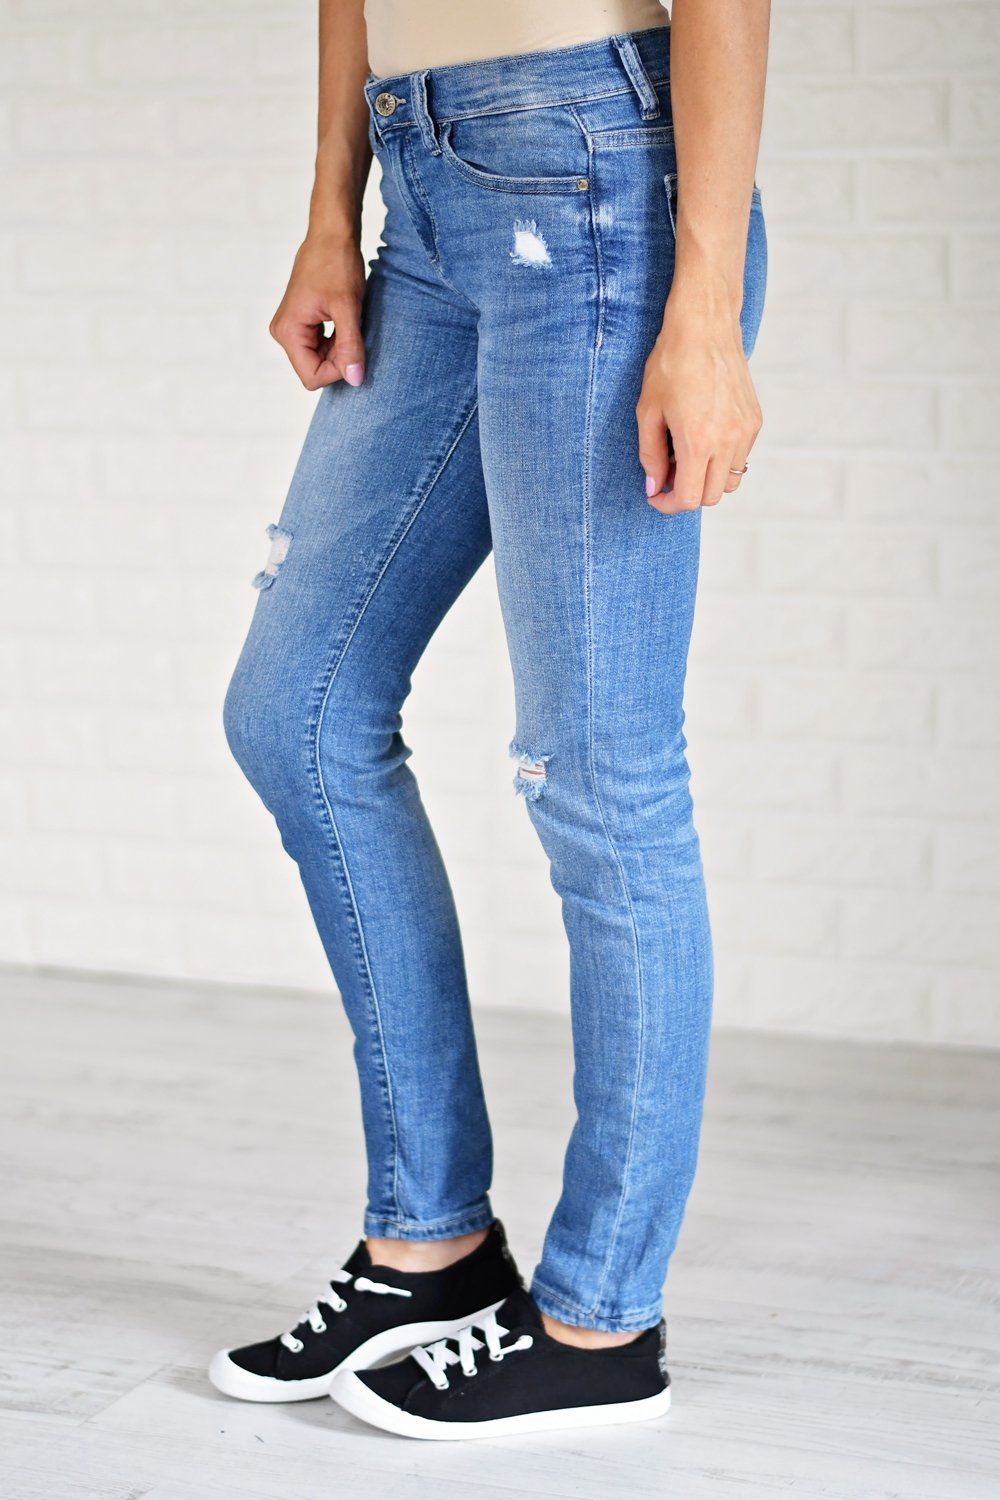 Sneak Peek ~ Kacey Wash Boyfriend Jeans